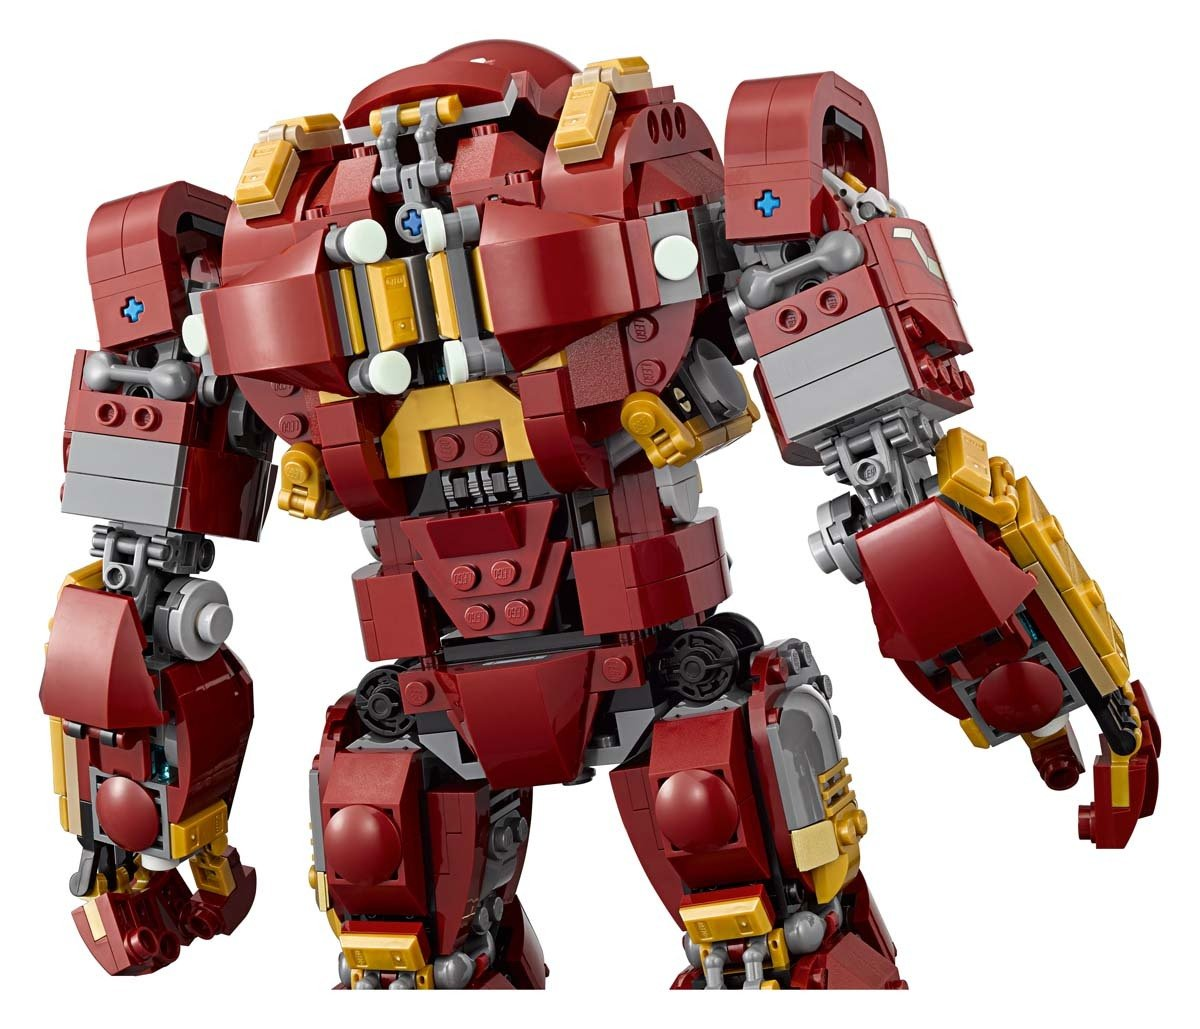 check-out-this-incredibly-cool-iron-man-hulkbuster-lego-playset2